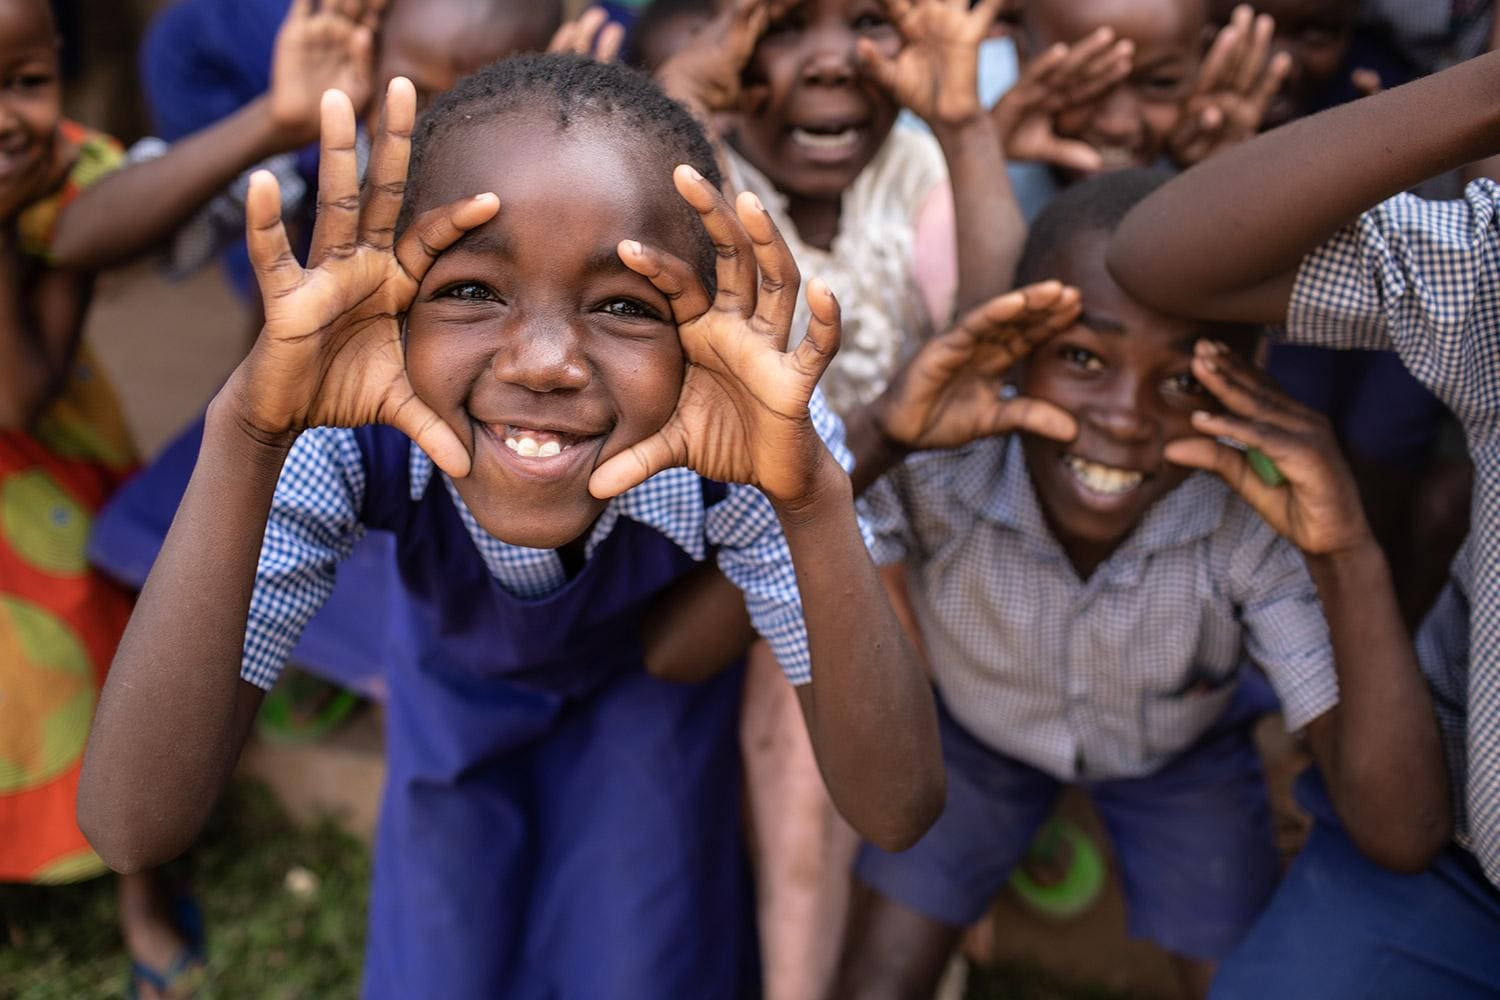 Kids Smiling in Kenya